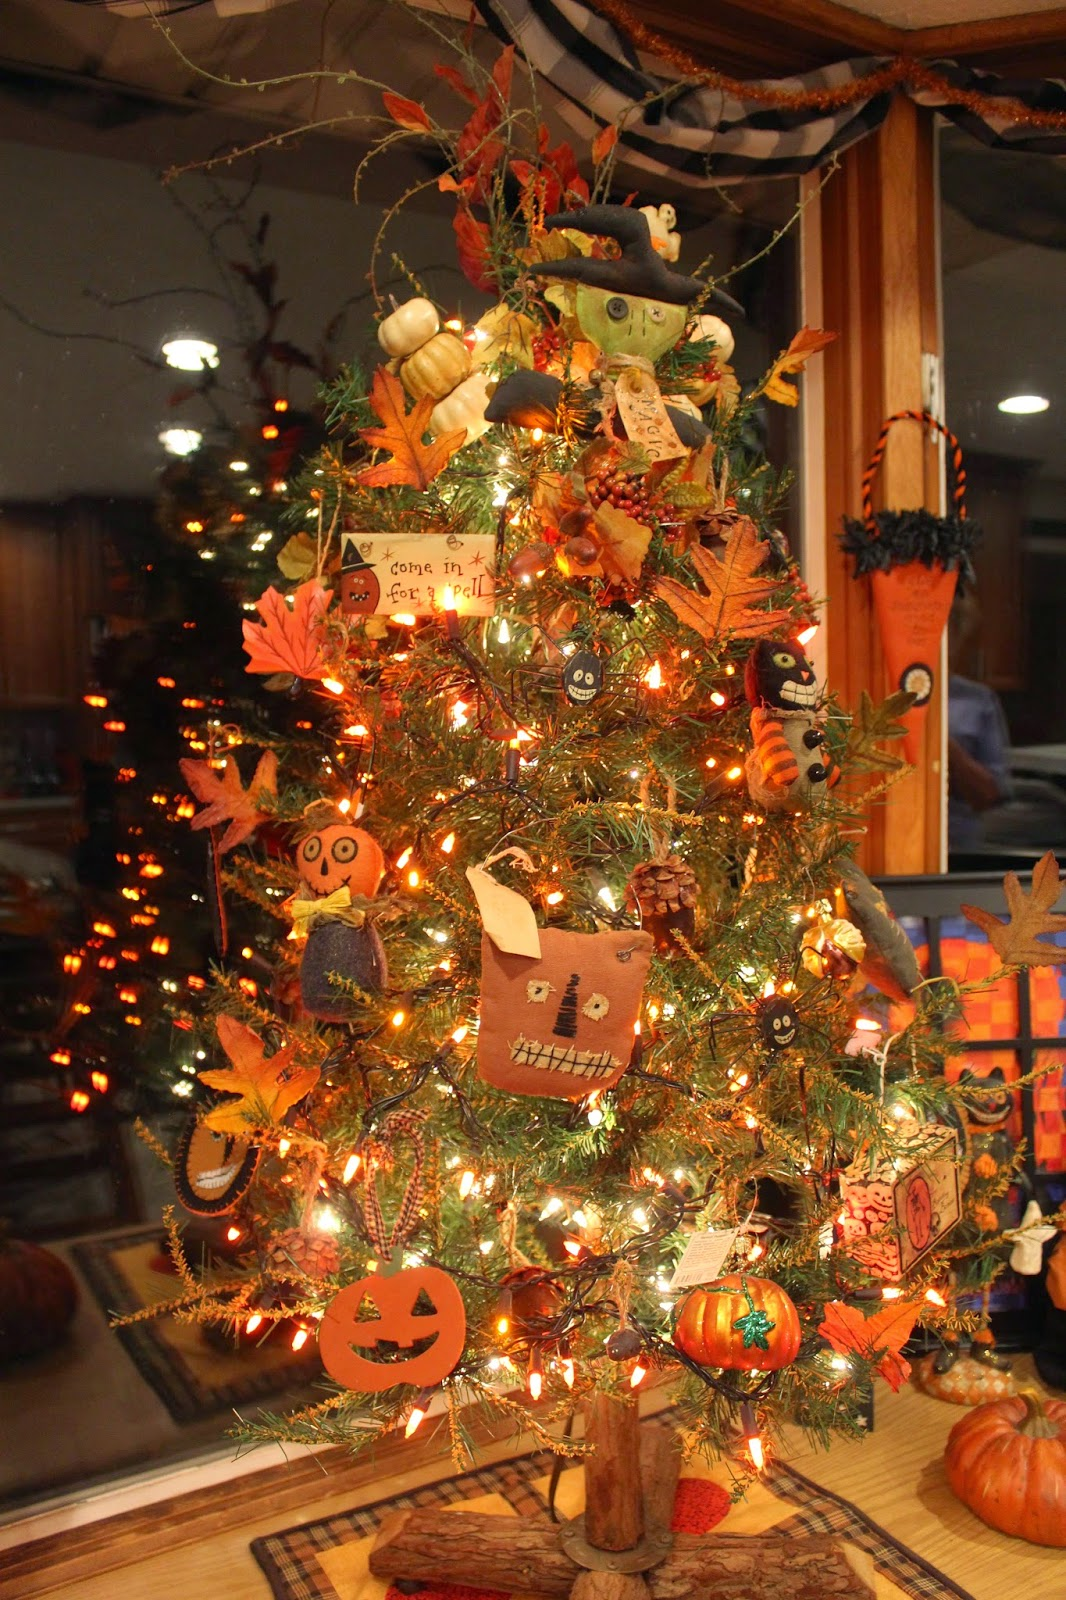 decorating a tree for autumn or halloween